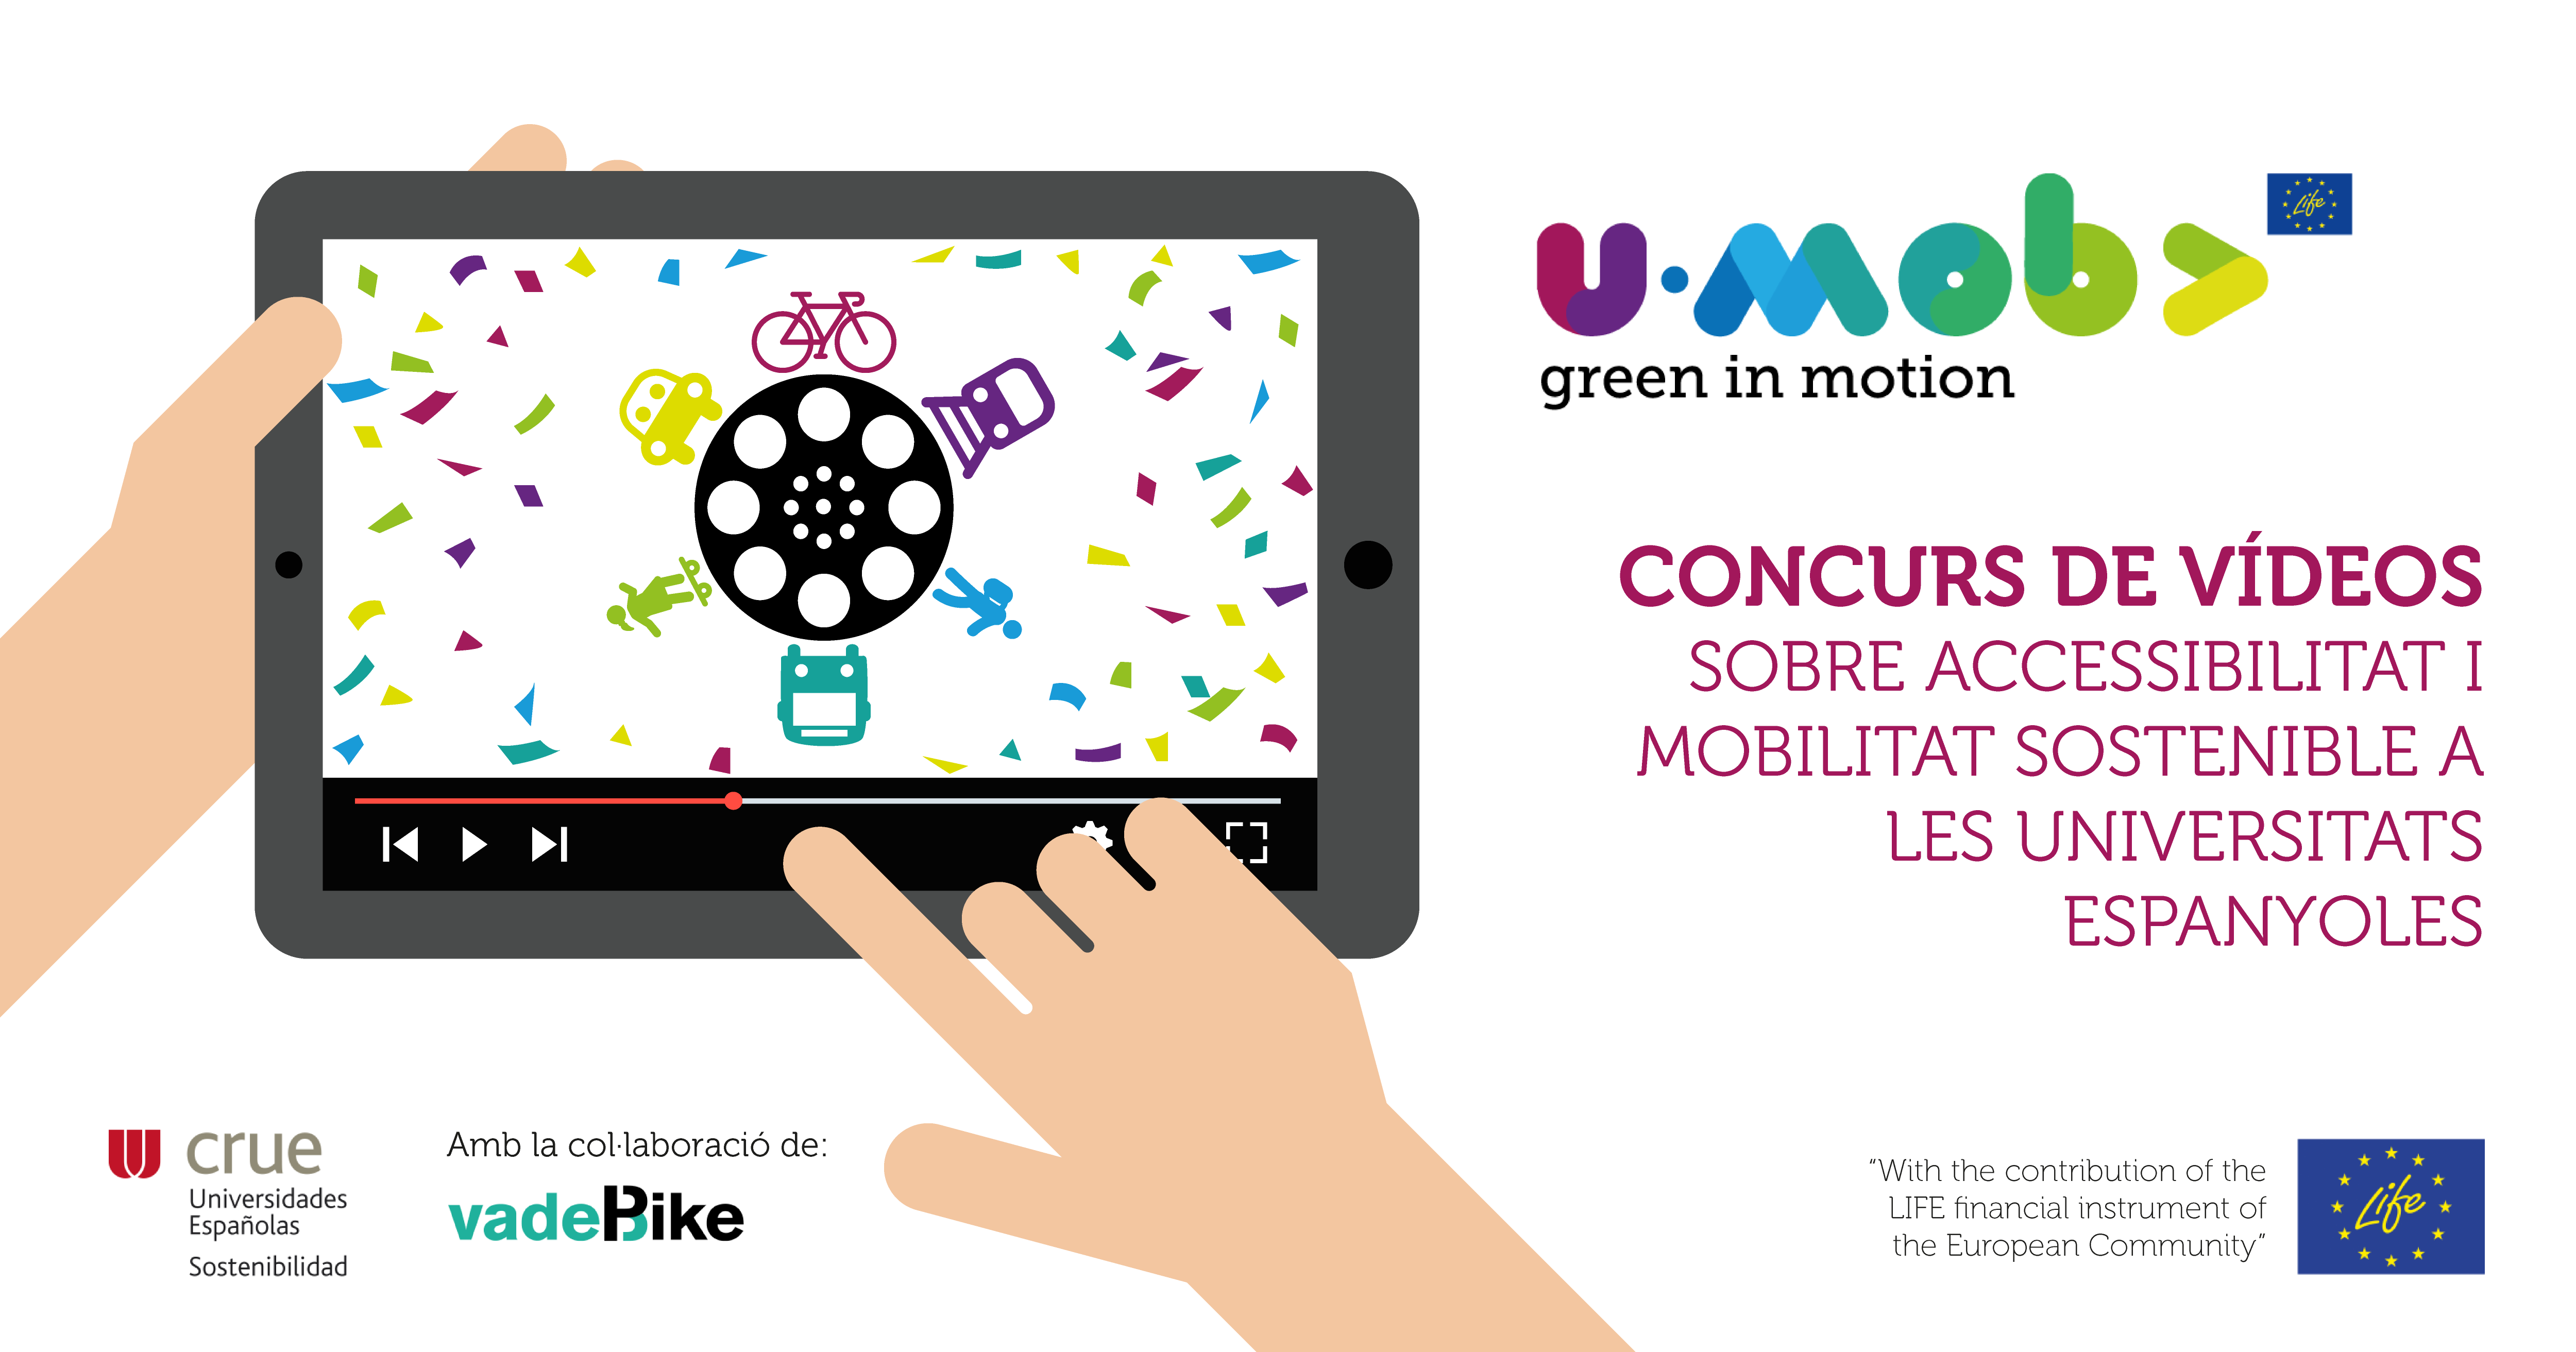 gestiosostenible_mobilitat_concurs-video-universitats.png